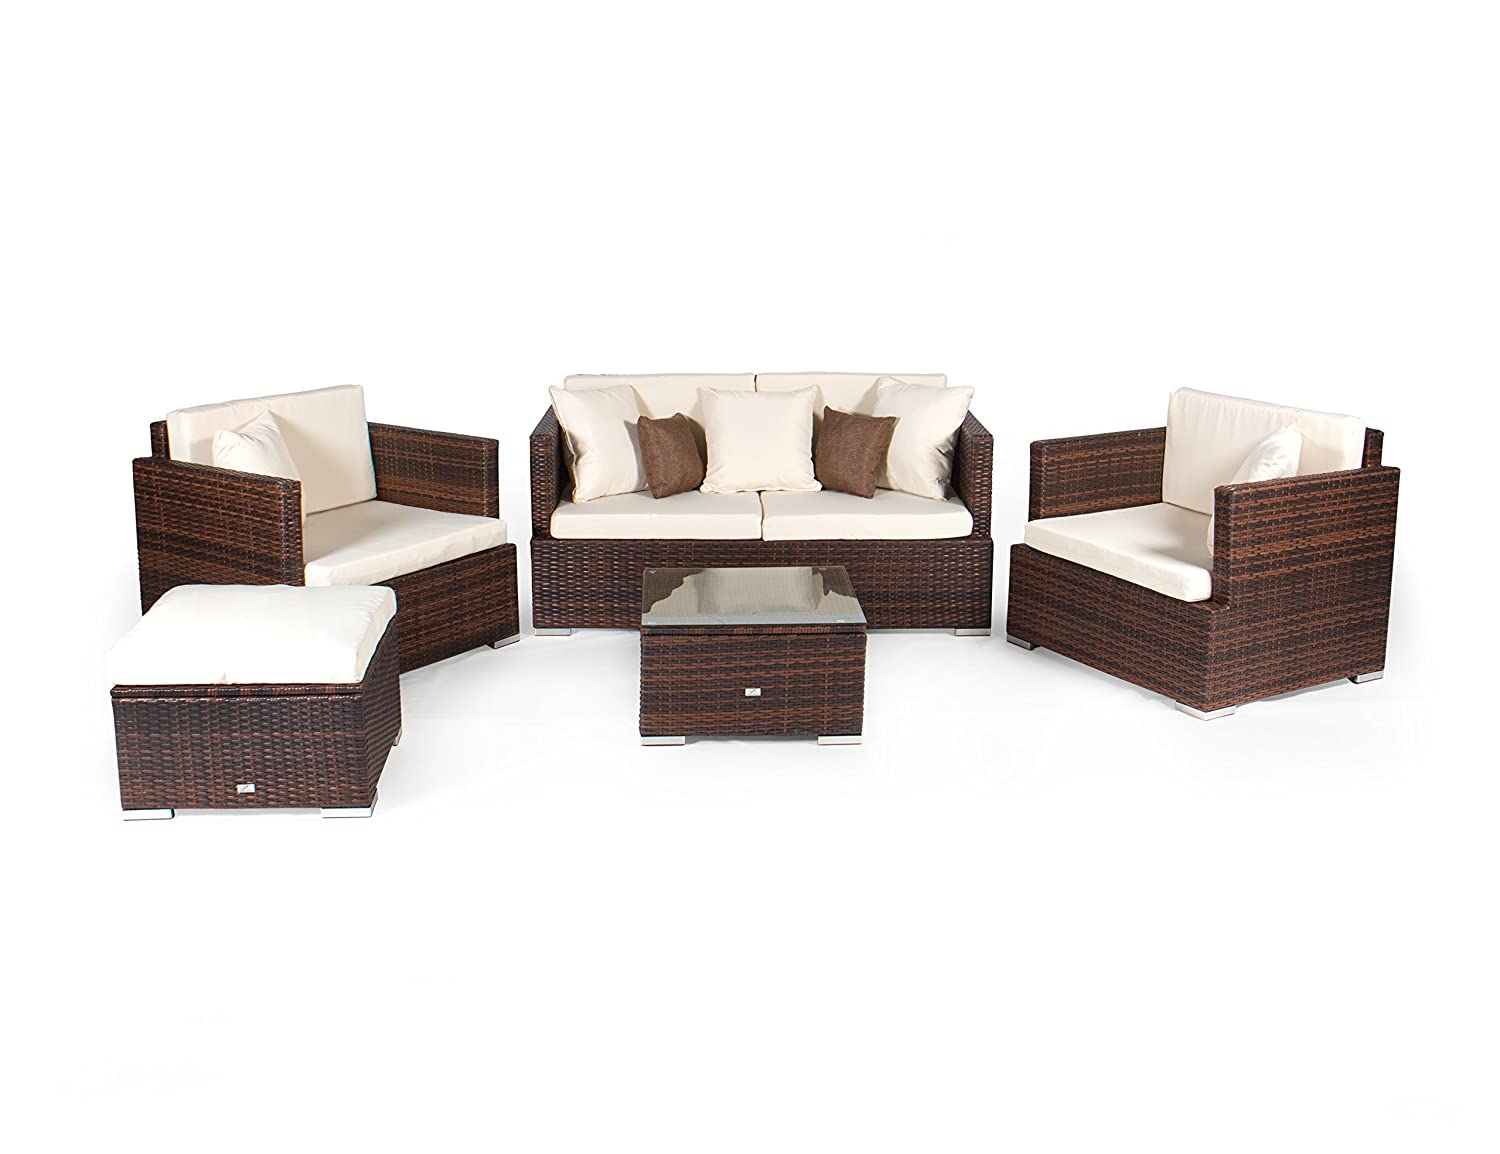 Vanage LP-9993A Gartengarnitur / -möbel, Chill und Lounge Set Melbourne